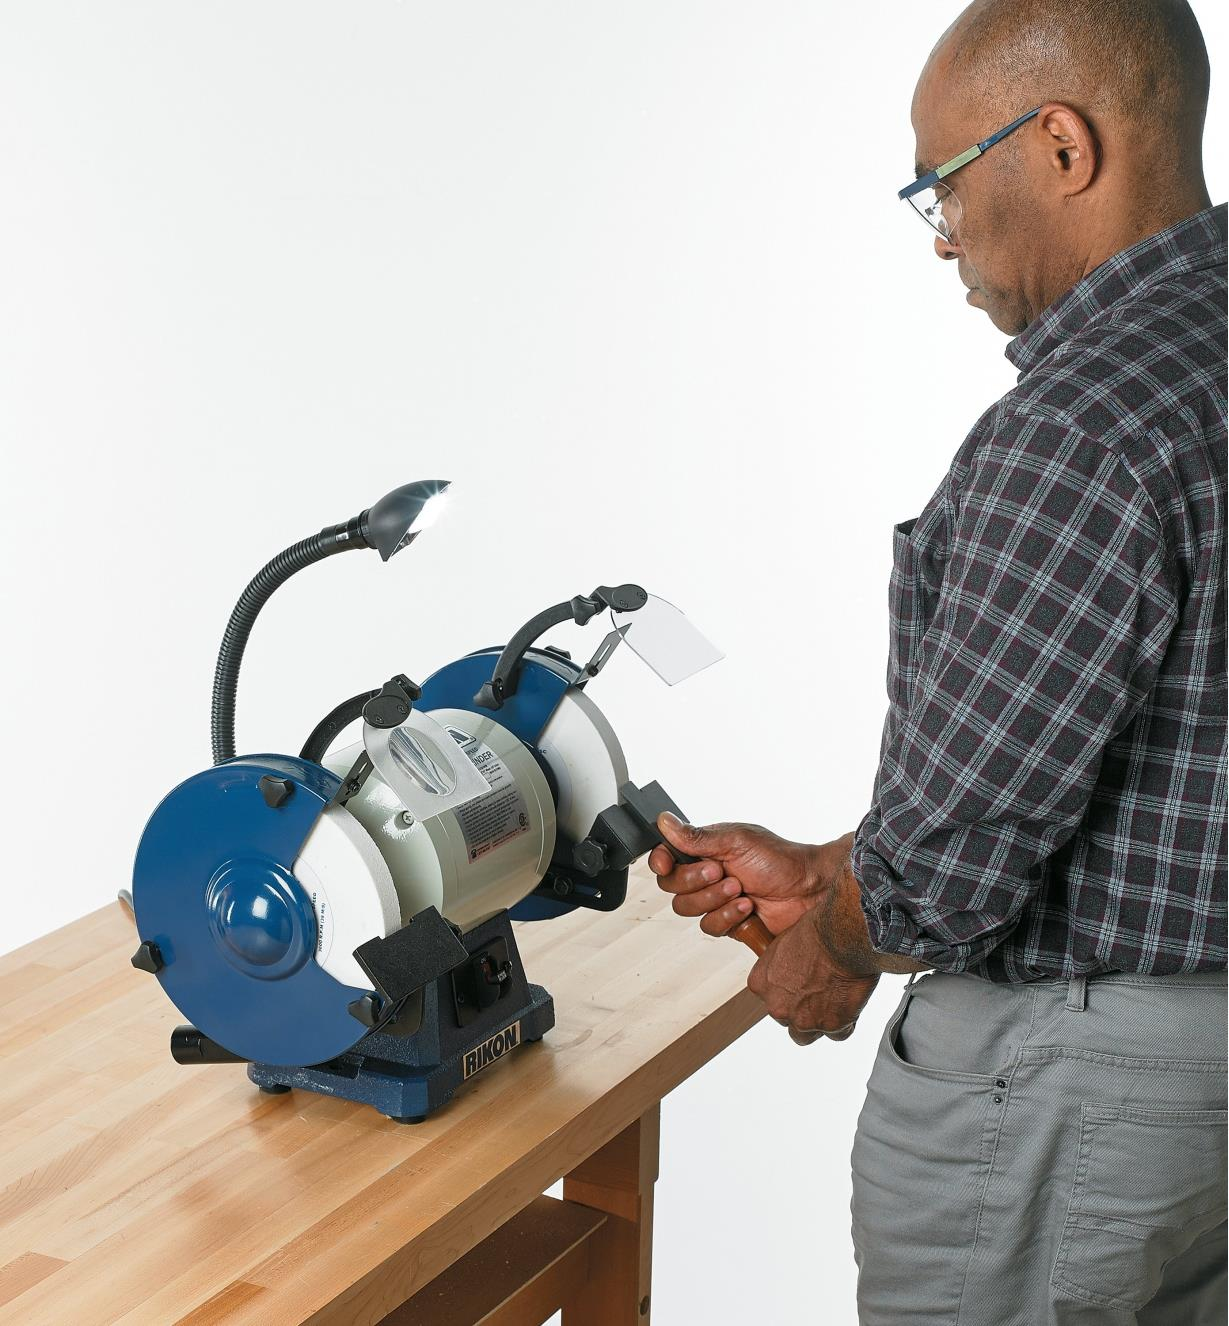 Surprising Rikon 8 Low Speed Grinder Pdpeps Interior Chair Design Pdpepsorg